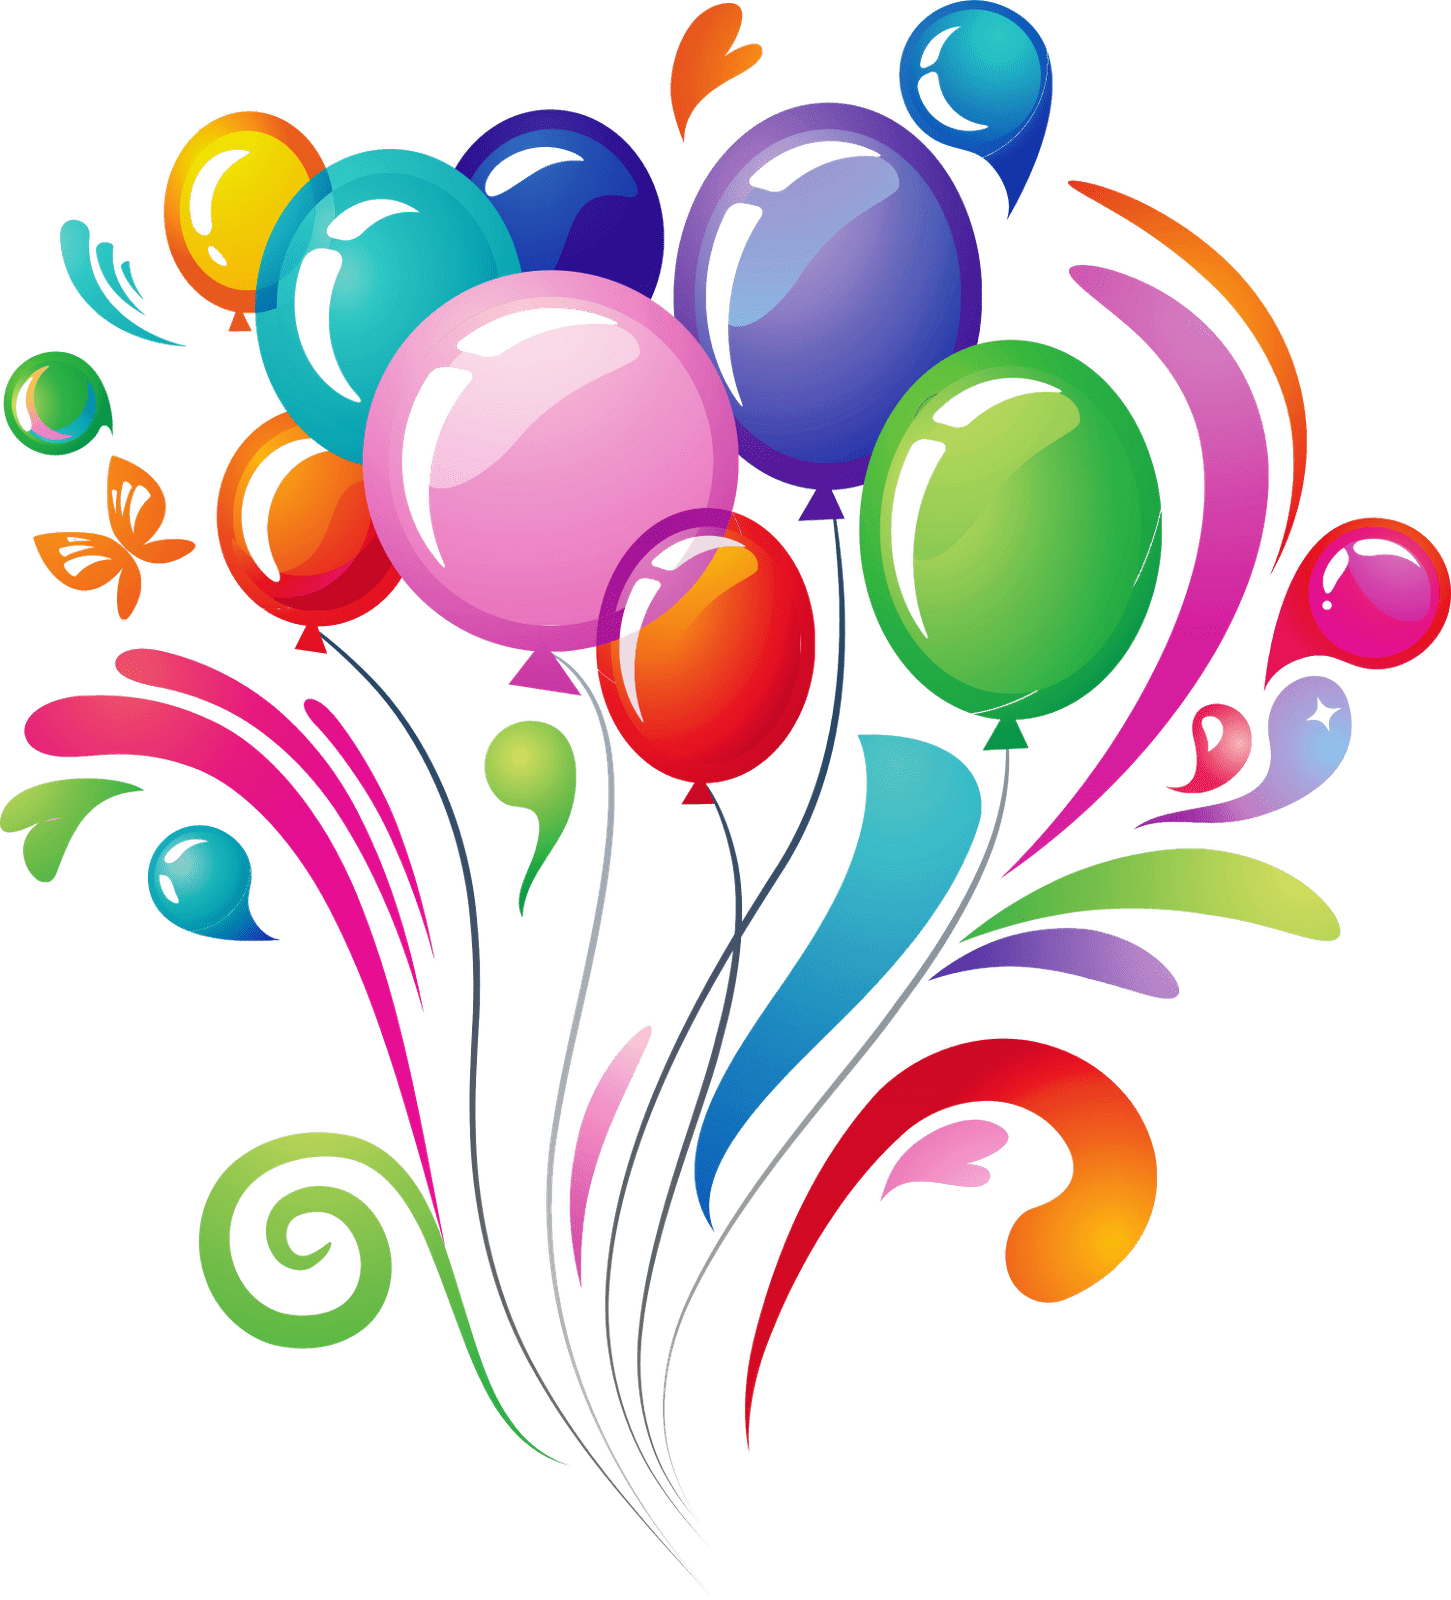 Happy Birthday Balloons Png Amp Transparent Images 105 Pngio